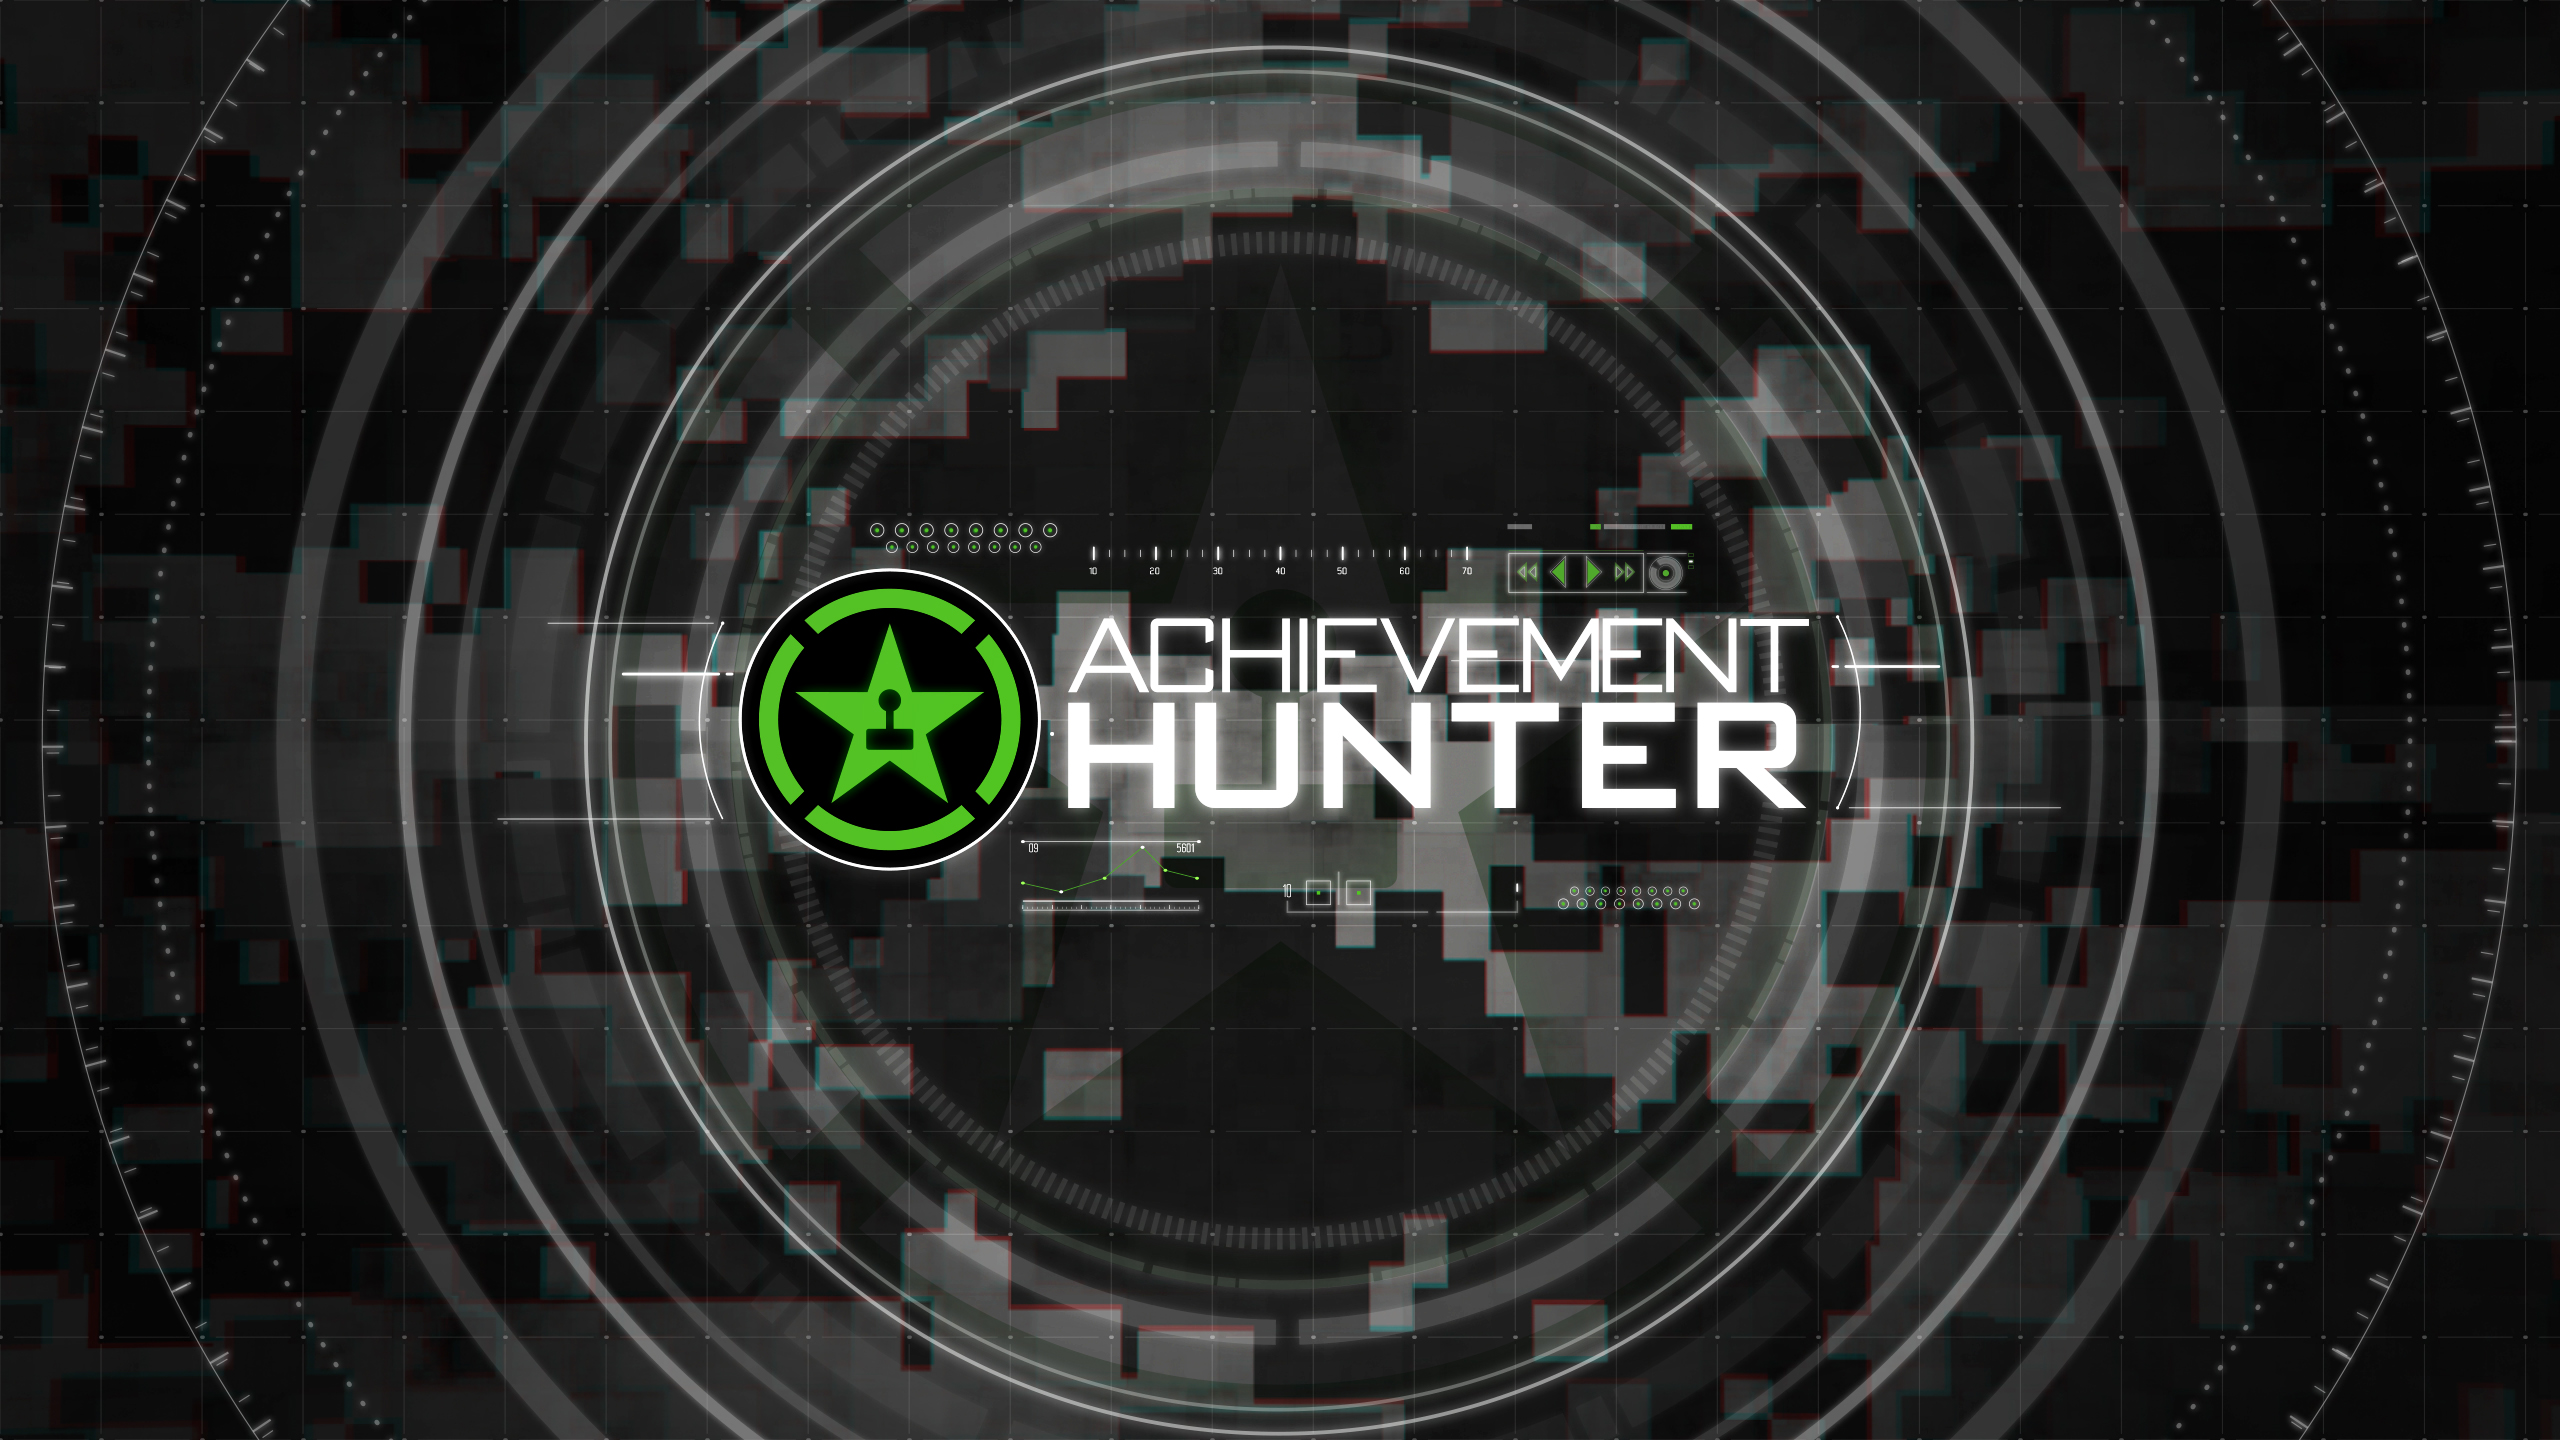 Achievement hunter vs wallpaper